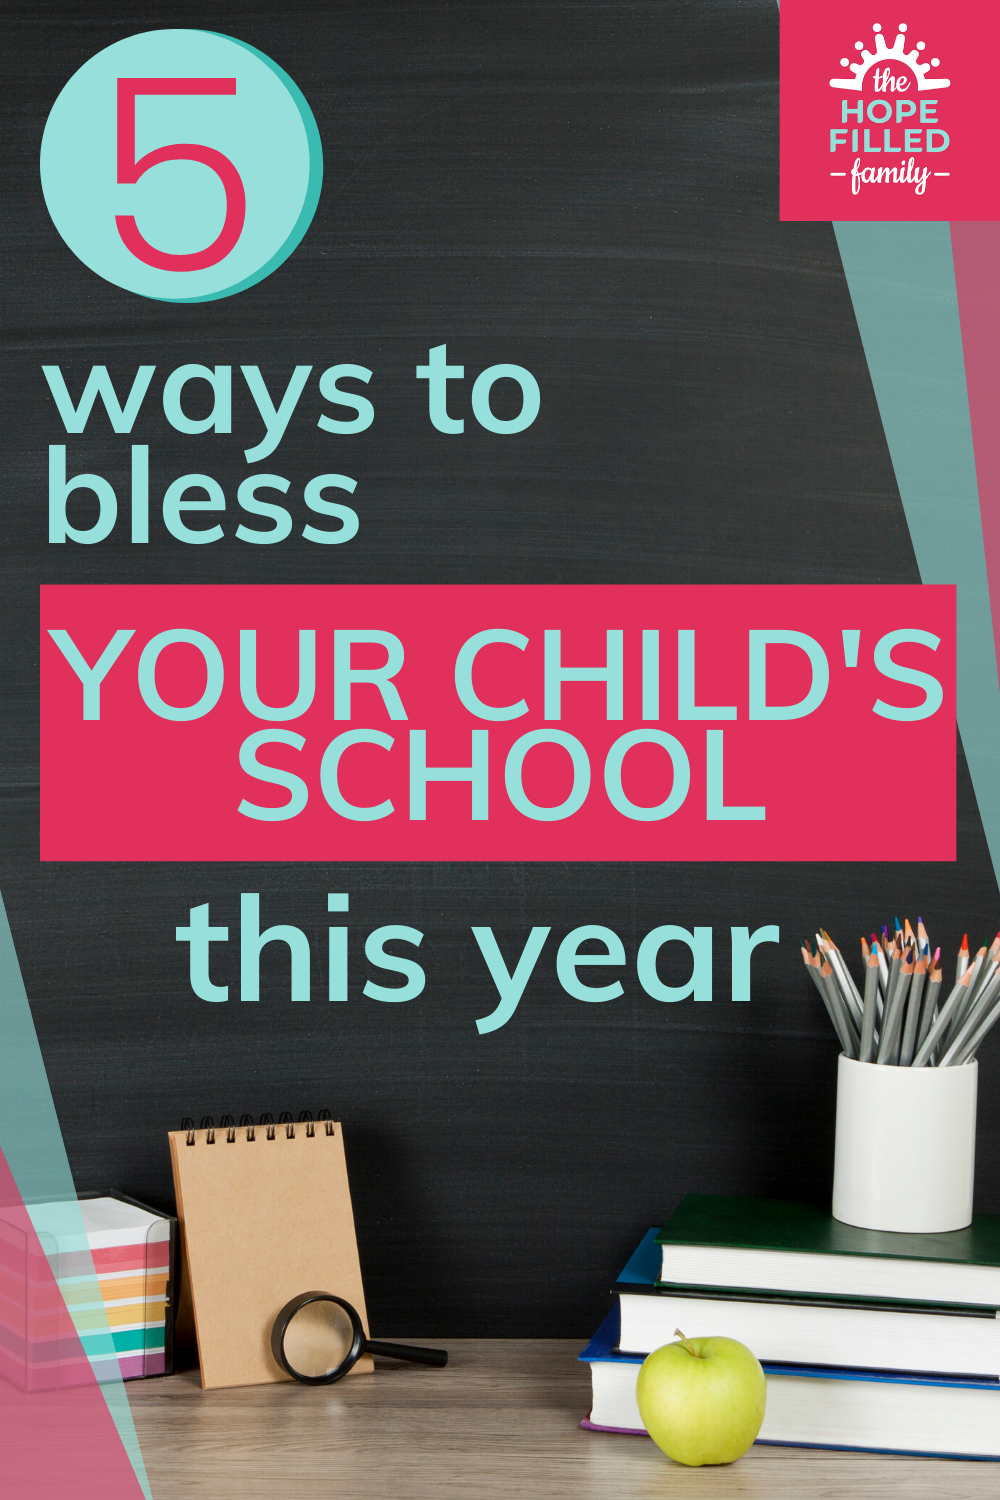 How can I be a great school parent? How can I help my child succeed at school? How can I bless my child's teachers?